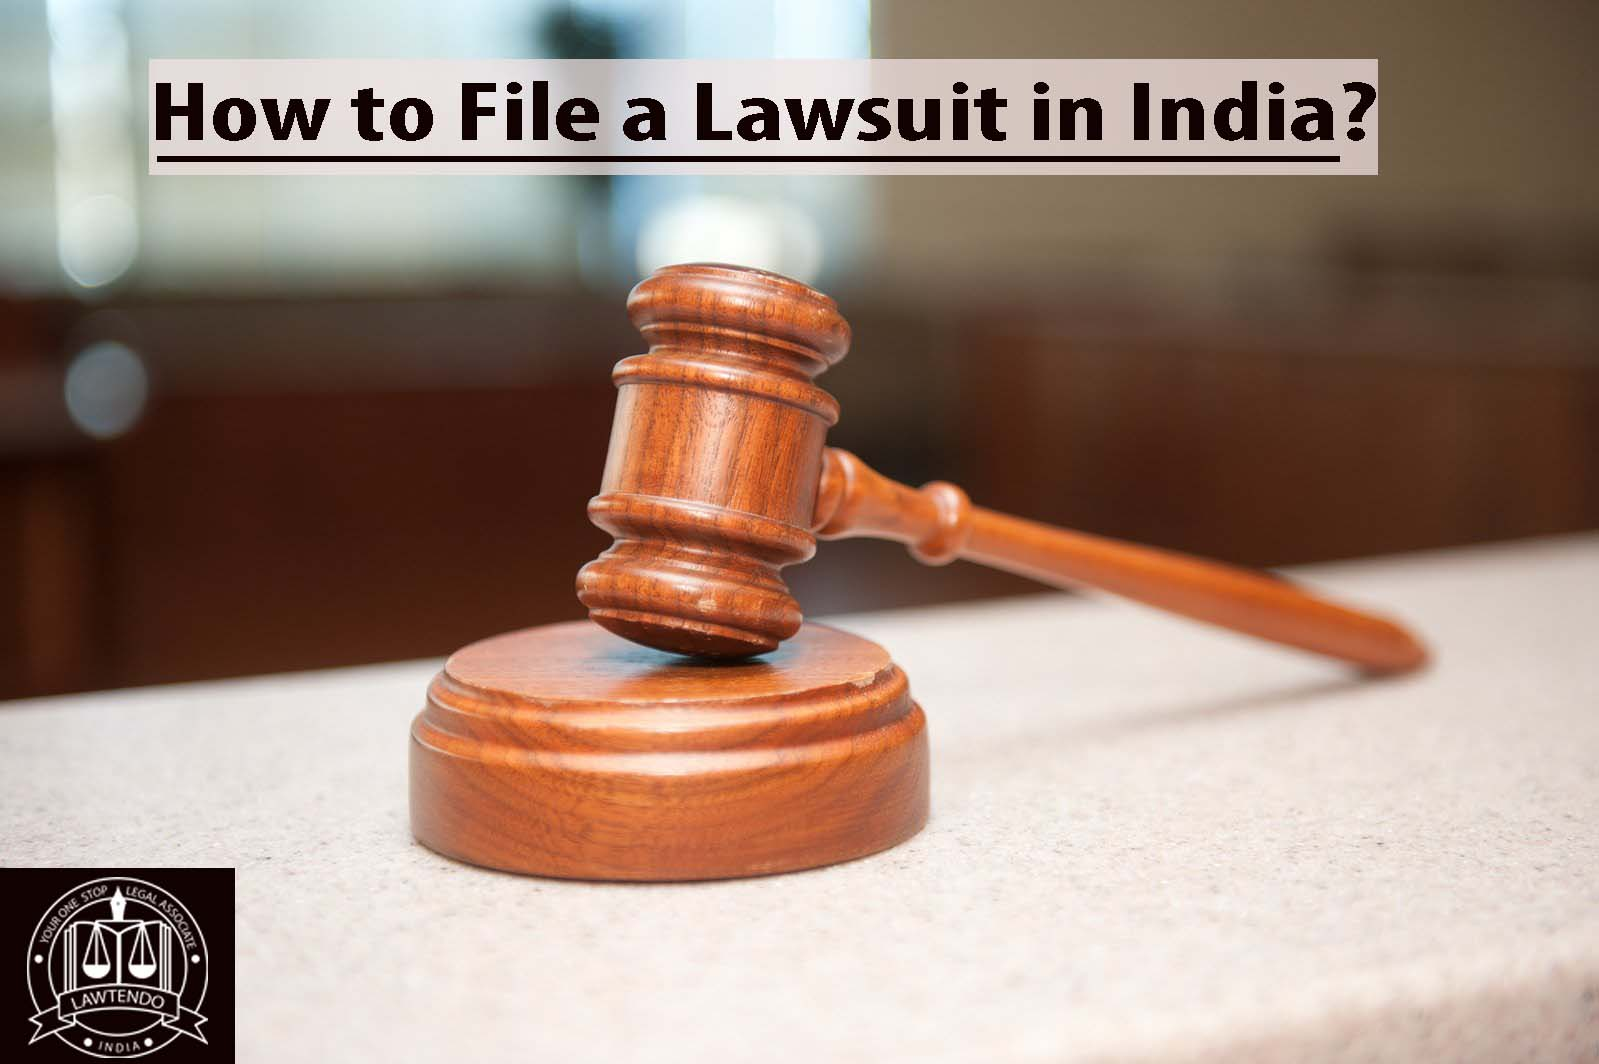 How to File a Lawsuit in India